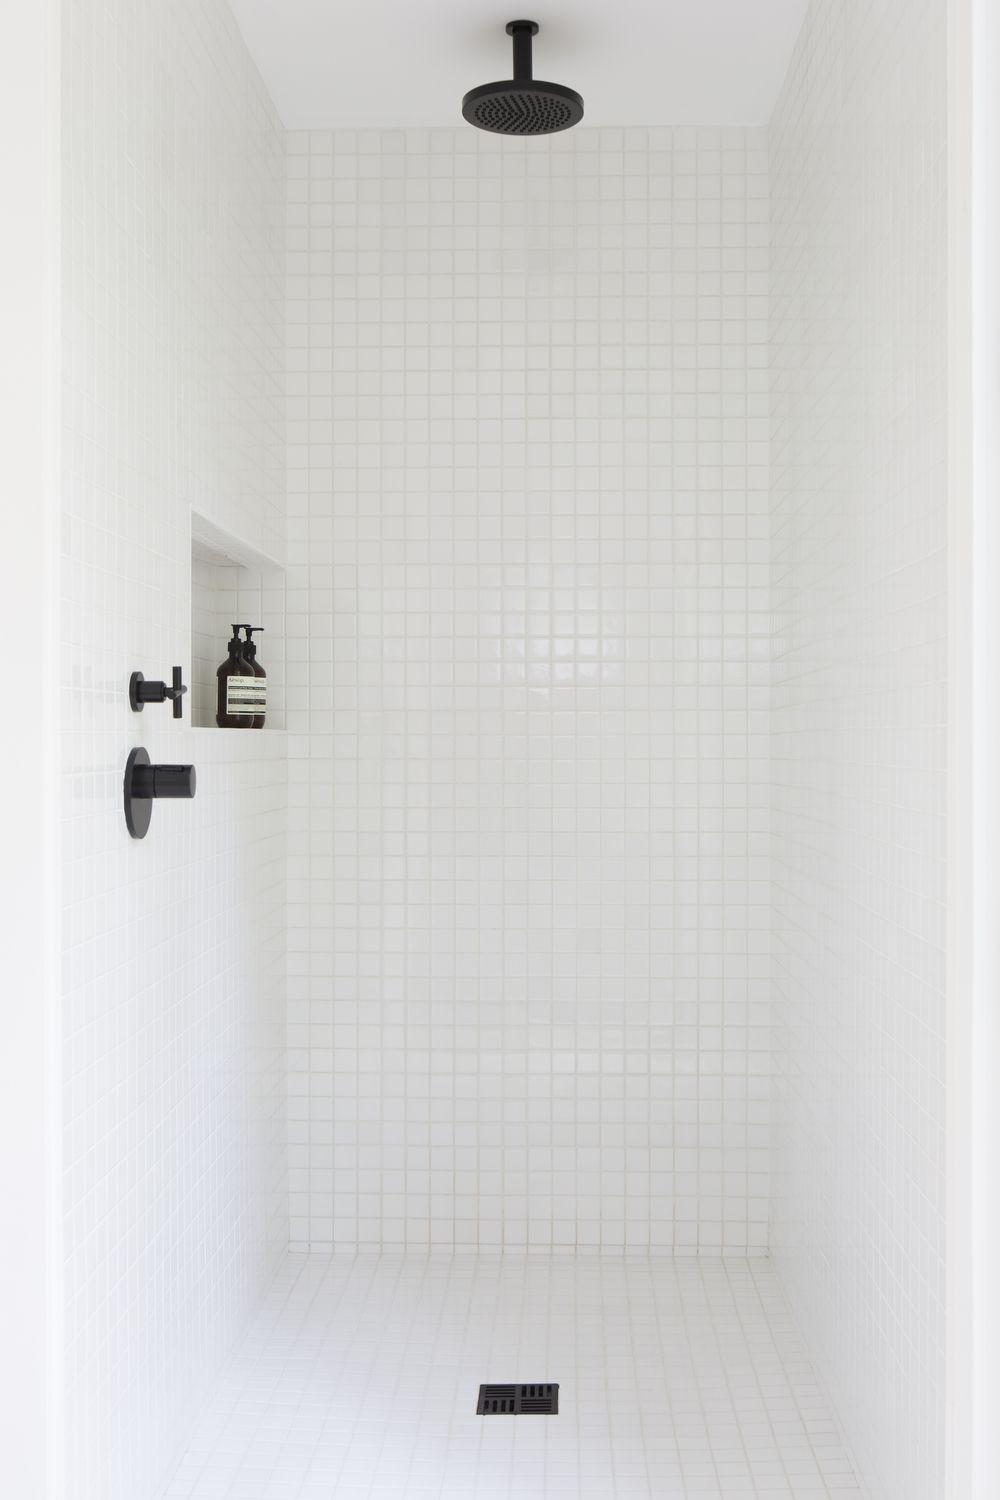 Bathroom Inspiration White And Black Bathroom Gyprock Wall Shower Niche Minimalistische Badgestaltung Minimalistisches Badezimmer Badezimmer Innenausstattung